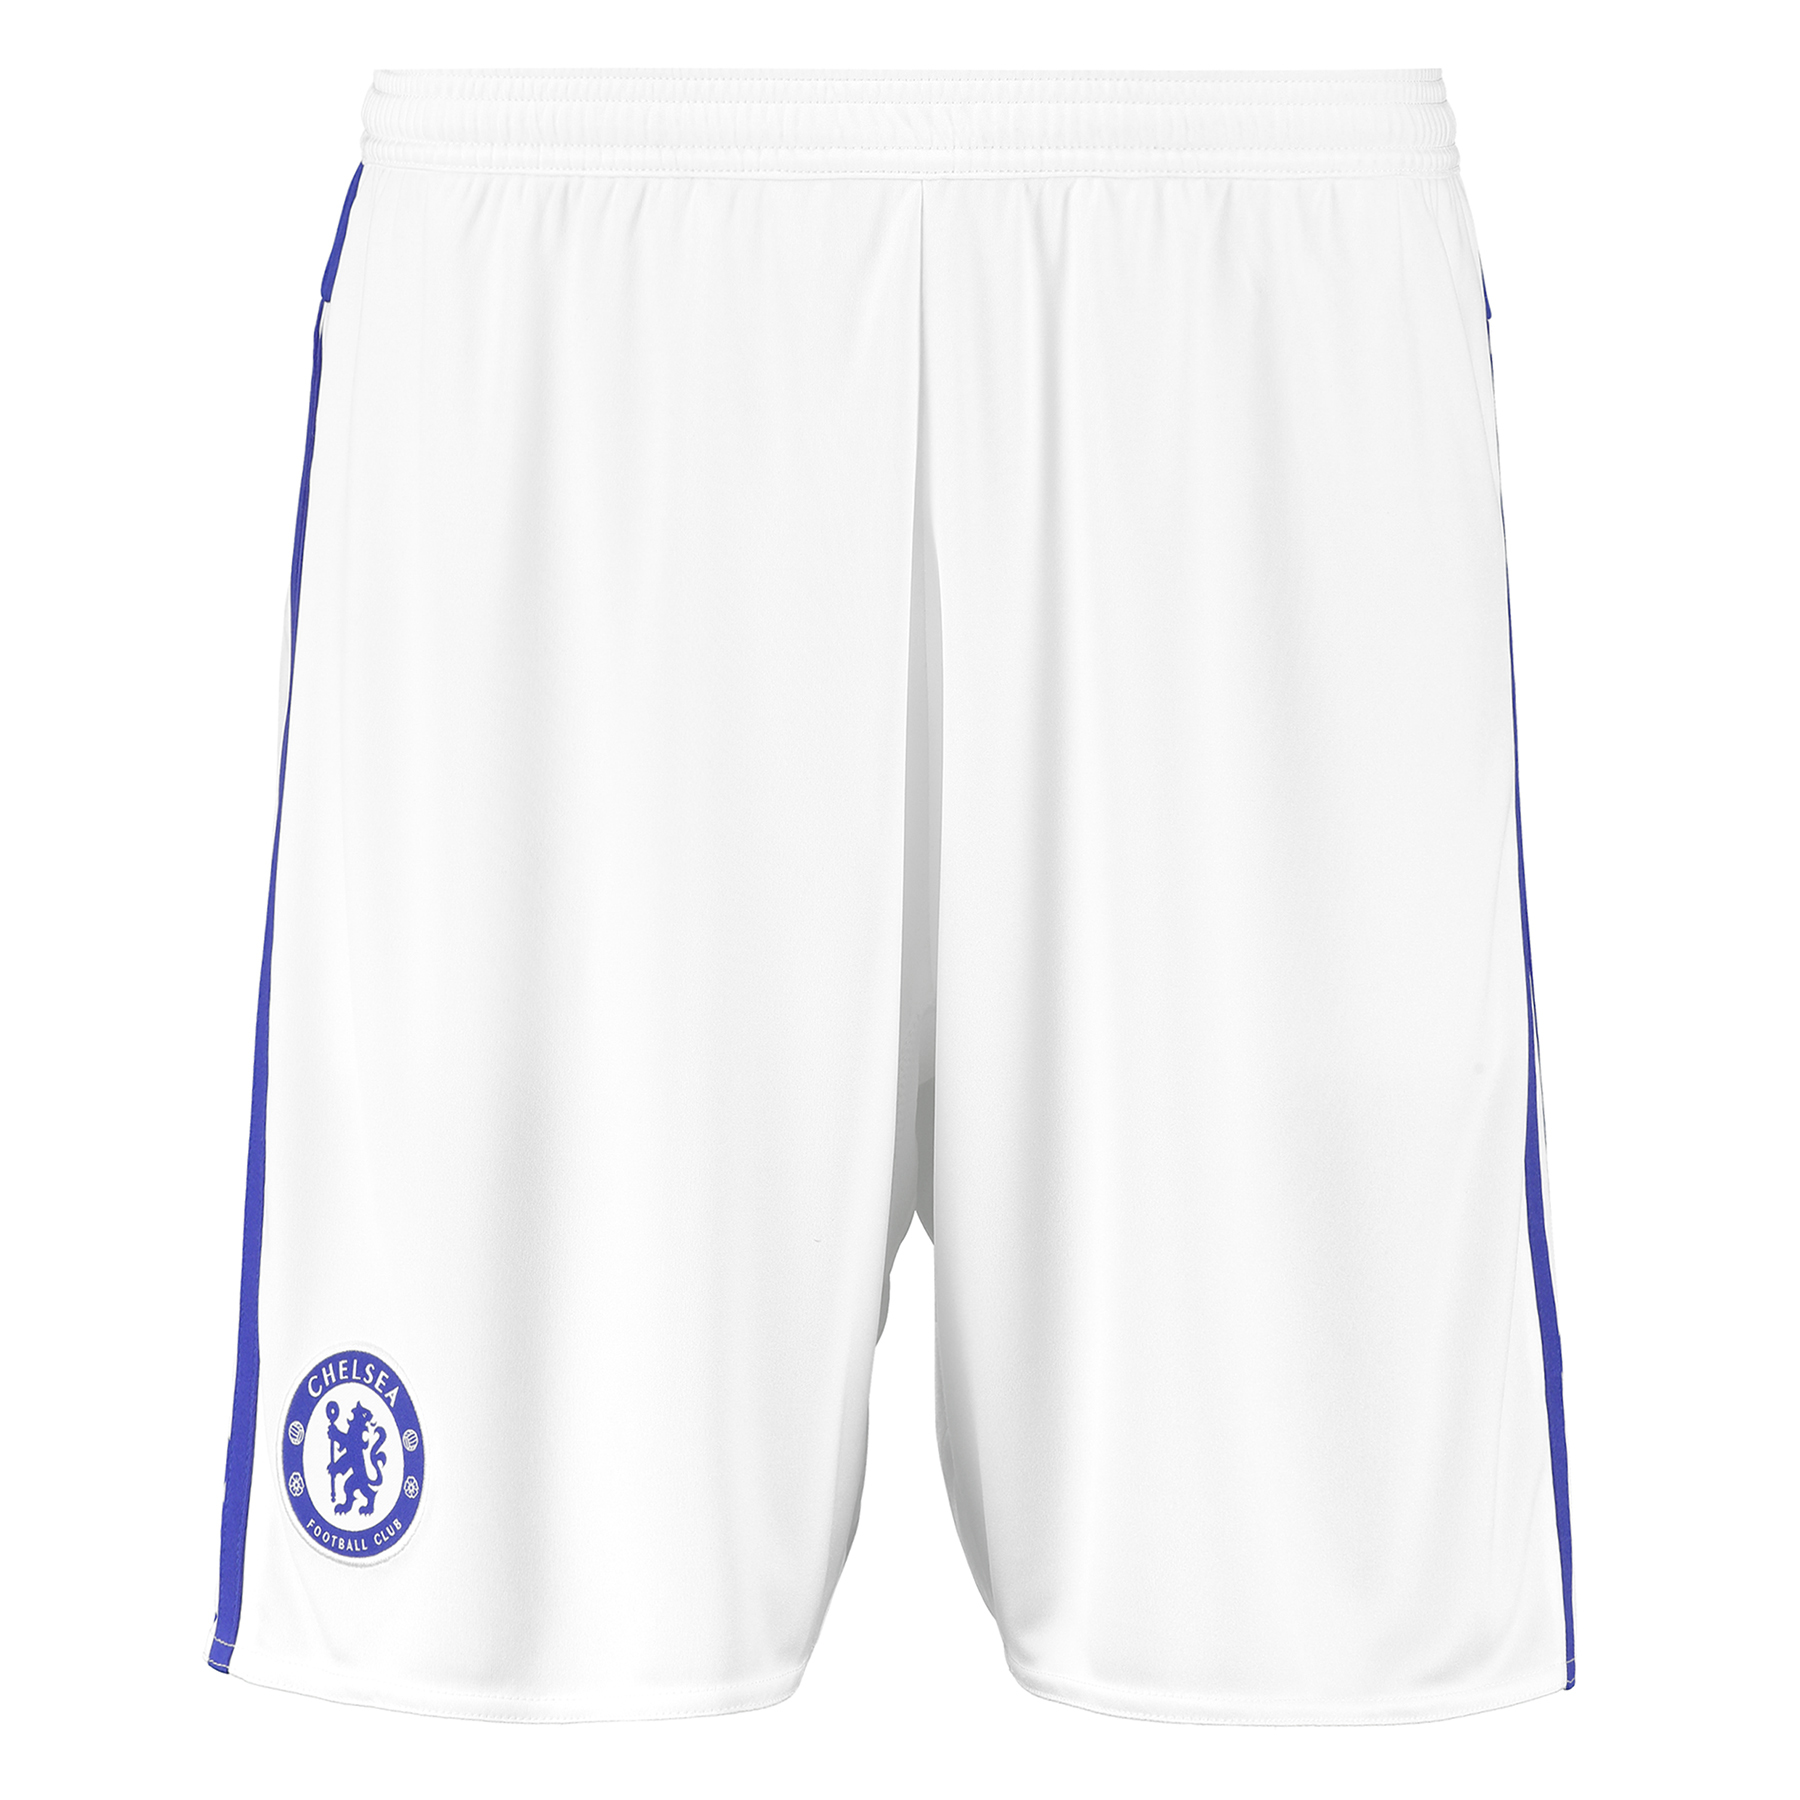 Chelsea Away Shorts 2015/16 - Kids Show your support for your favourite club with the new Chelsea Away Shorts for 2015/16. Join the likes of Champions Diego Costa, Cesc Fabregas and Eden Hazard and order your new Chelsea shorts today! Benefits CLIMACOOL® Provides heat and moisture management through ventilation Club crest: woven badge Without inner mesh brief 100% rec. Polyester